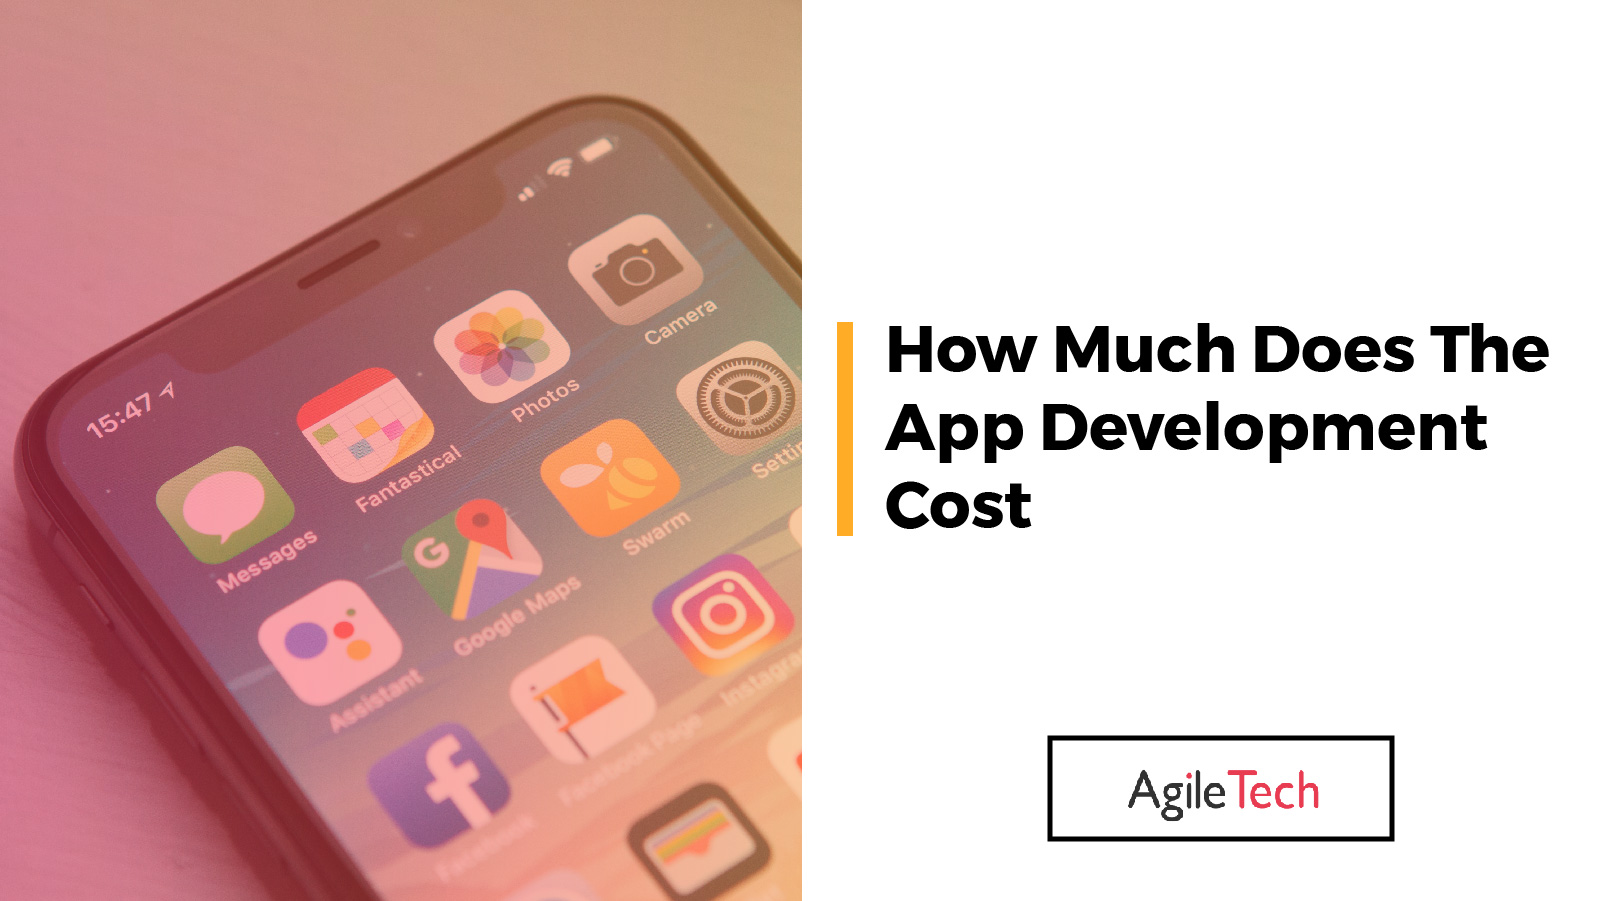 app development cost how much does it cost to develop app by agiletech